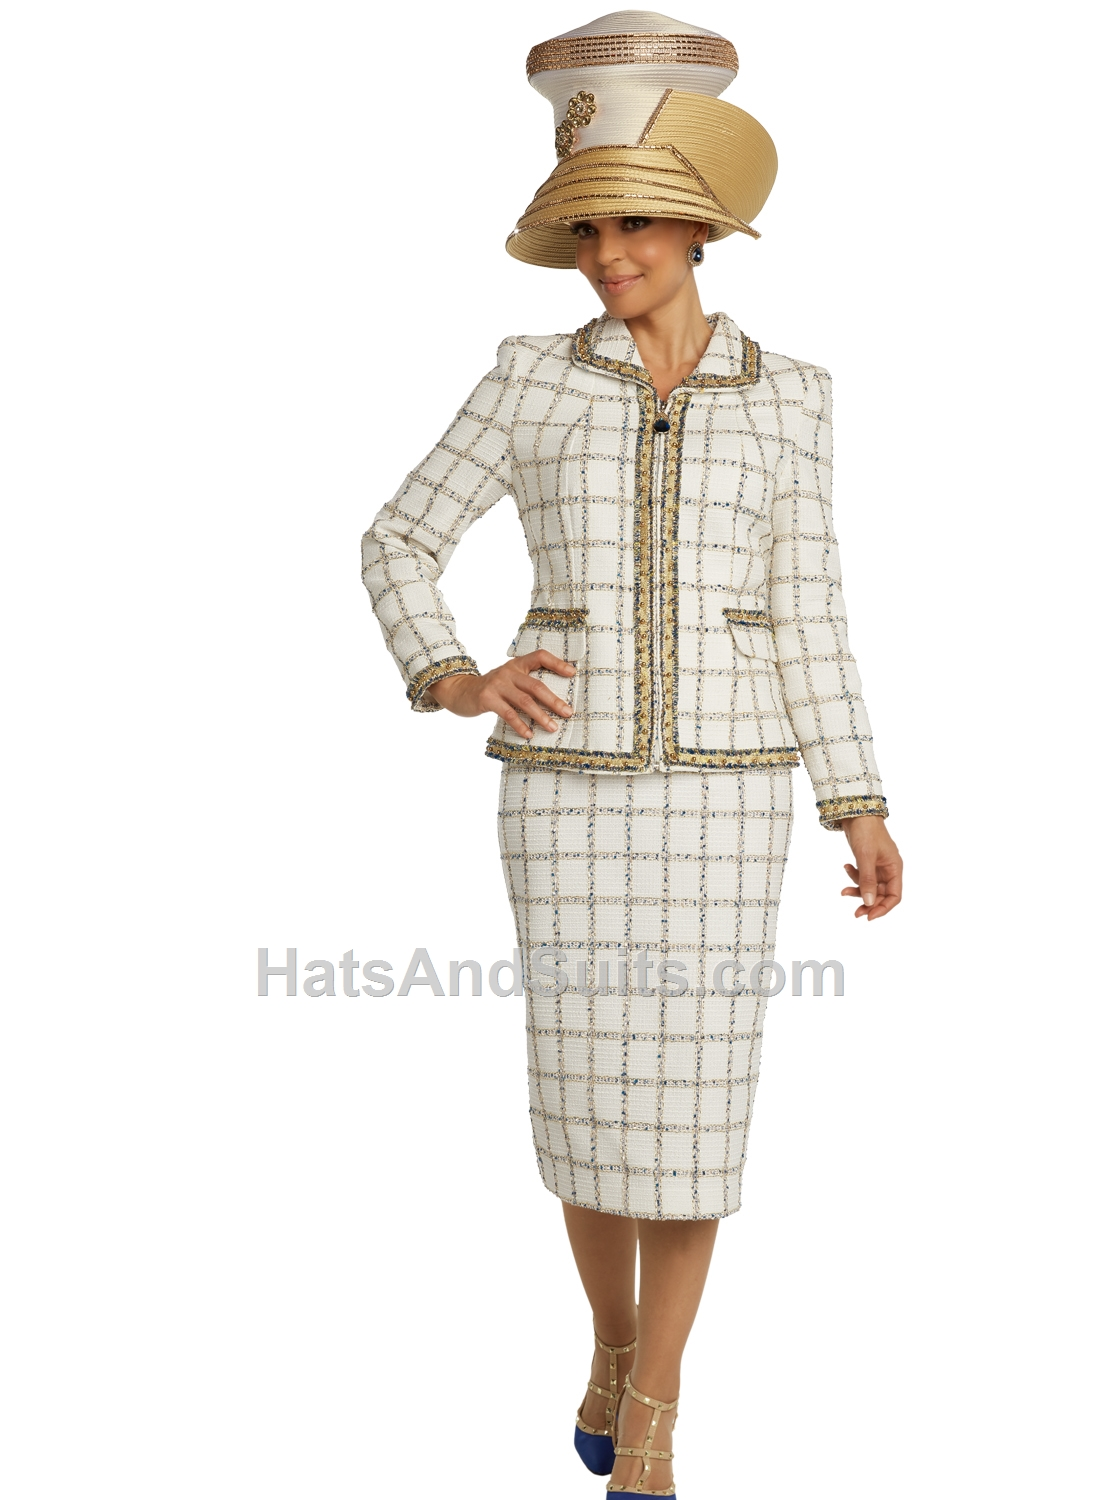 5690 Donna Vinci Couture 2 Pc. Jacket & Skirt Set. SP20